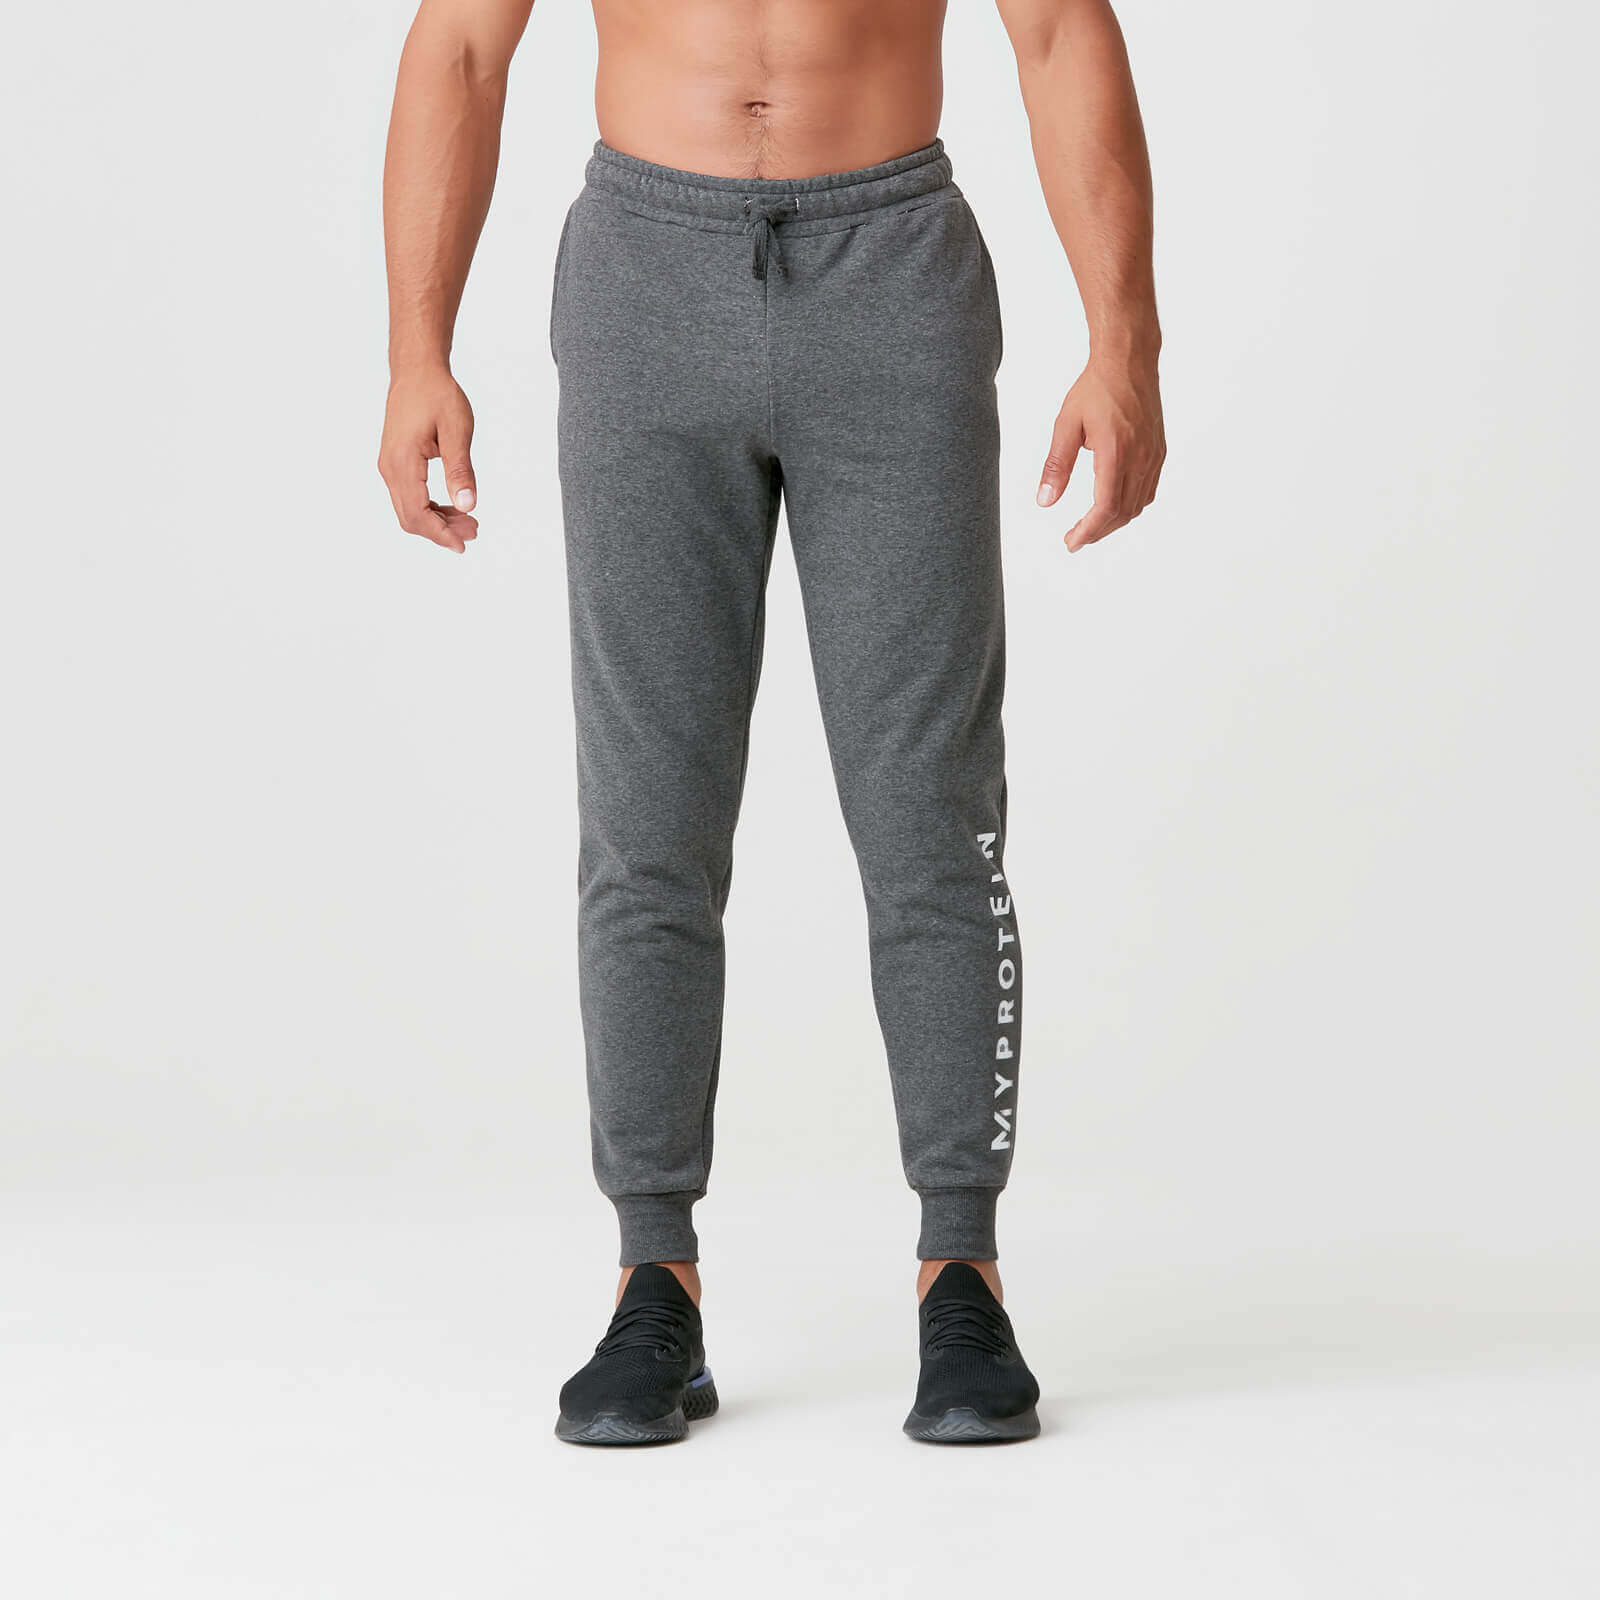 reputable site 684a7 7344c ... The Original Joggers - Charcoal Marl - XS - Charcoal Marl